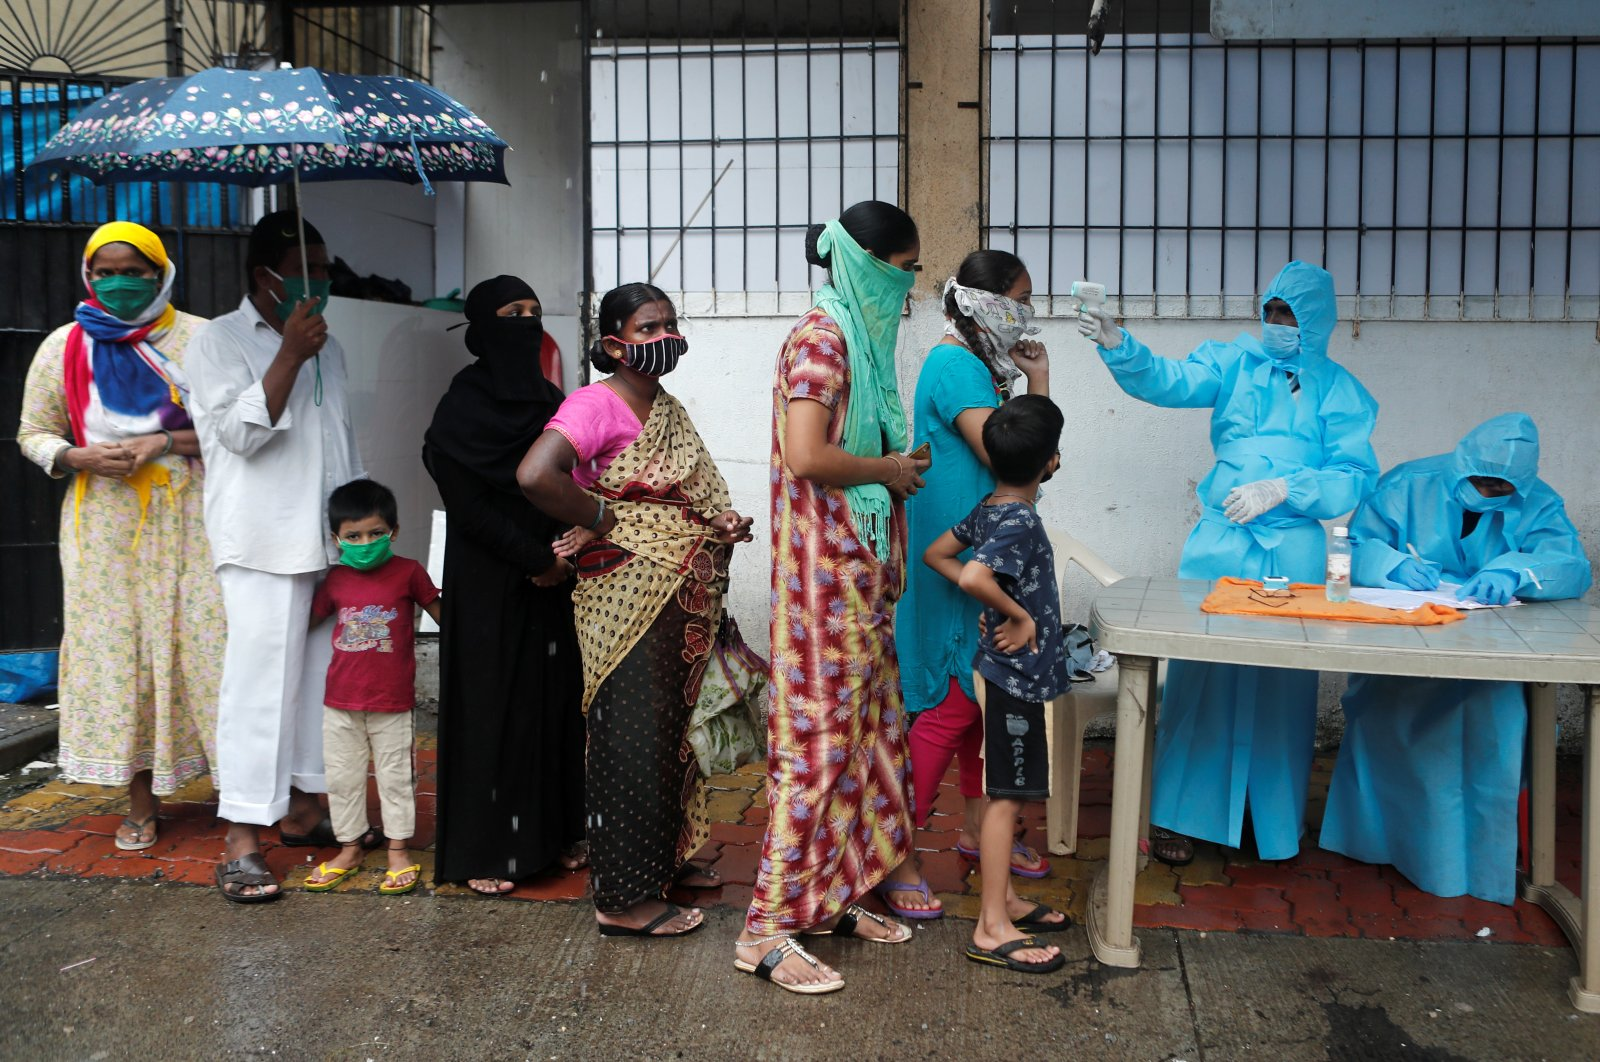 People stand in a queue as a healthcare worker checks the temperature of a resident using an electronic thermometer during a medical campaign for the coronavirus disease (COVID-19) in Mumbai, India, July 4, 2020. (Reuters Photo)